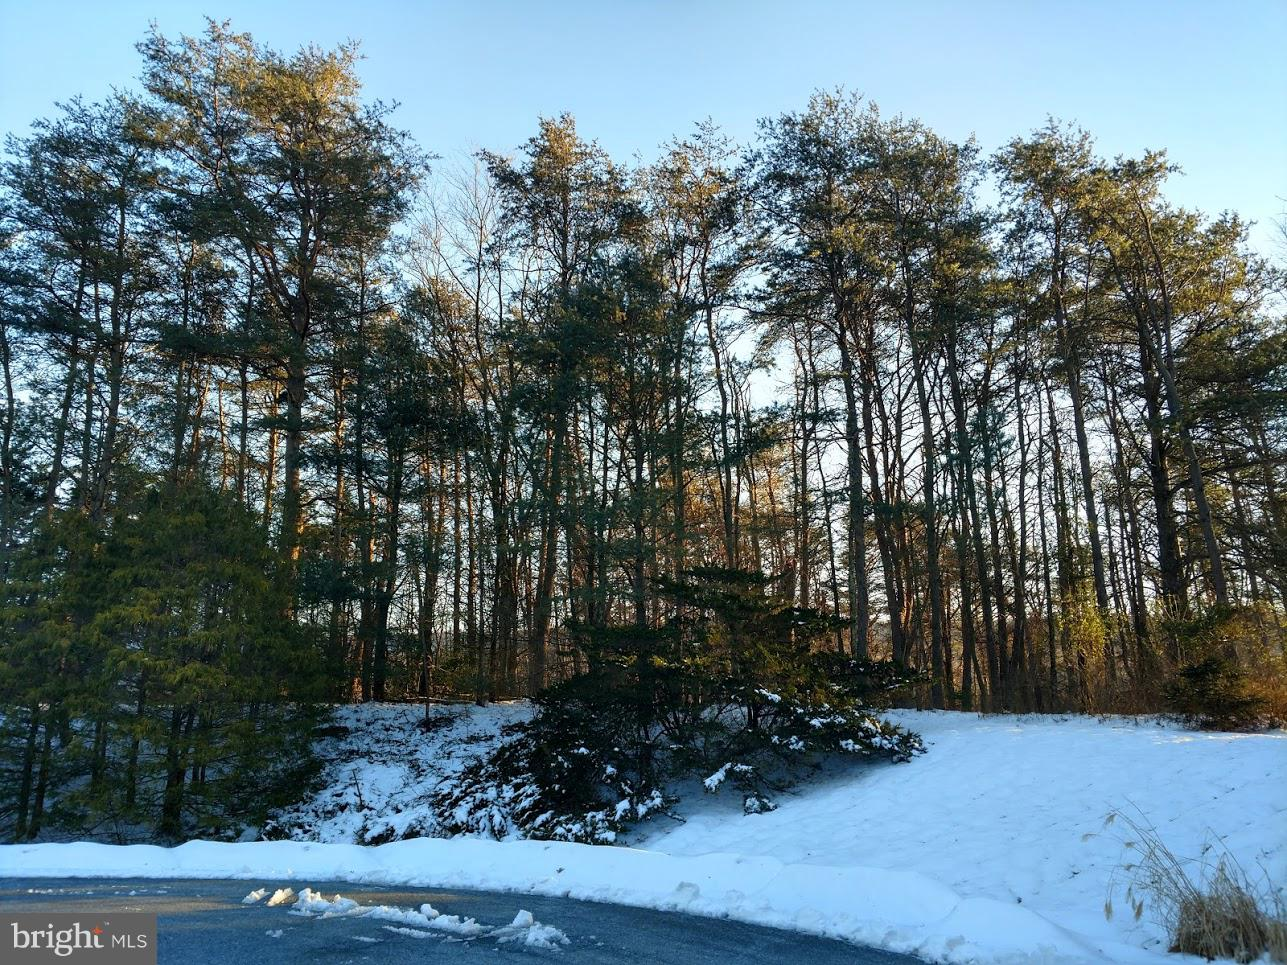 LOT 28 - WEAVER DRIVE, MARYSVILLE, PA 17053